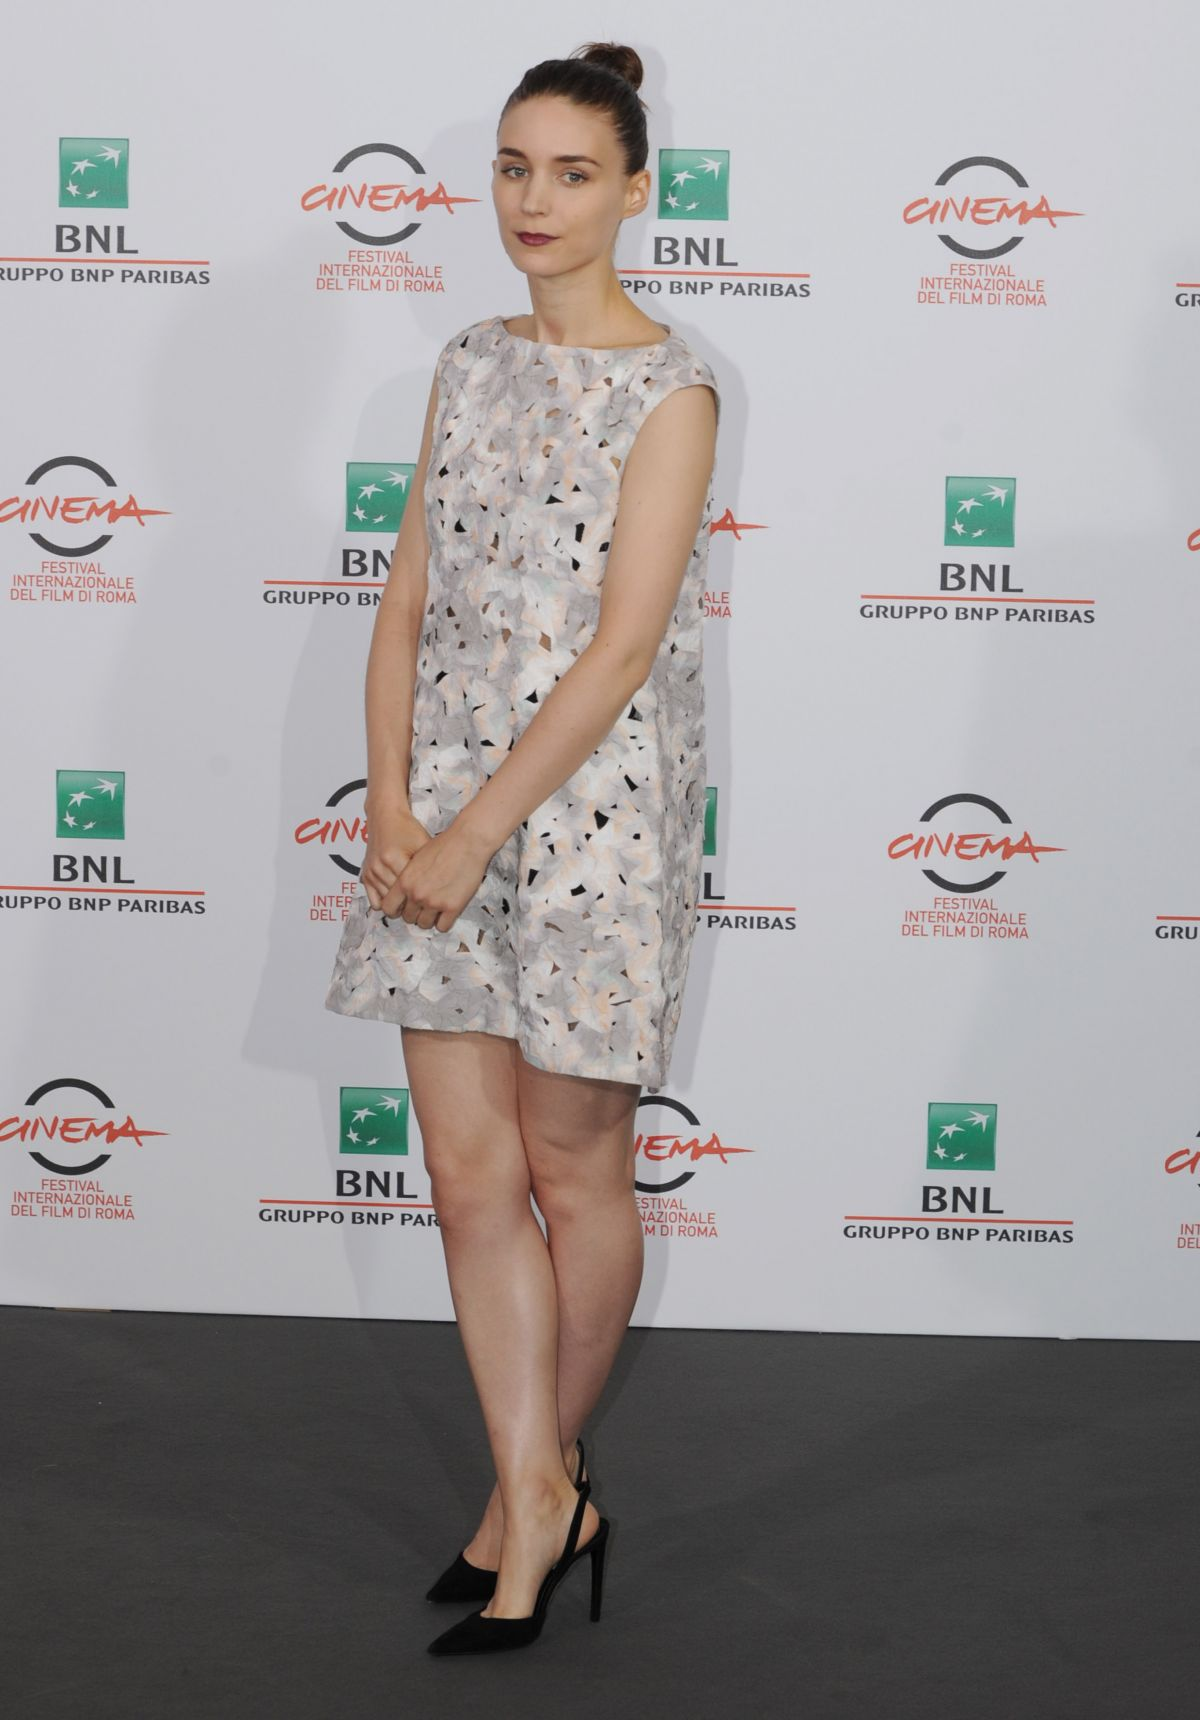 rooney-mara-at-trash-photocall-during-the-9th-rome-film-festival_9